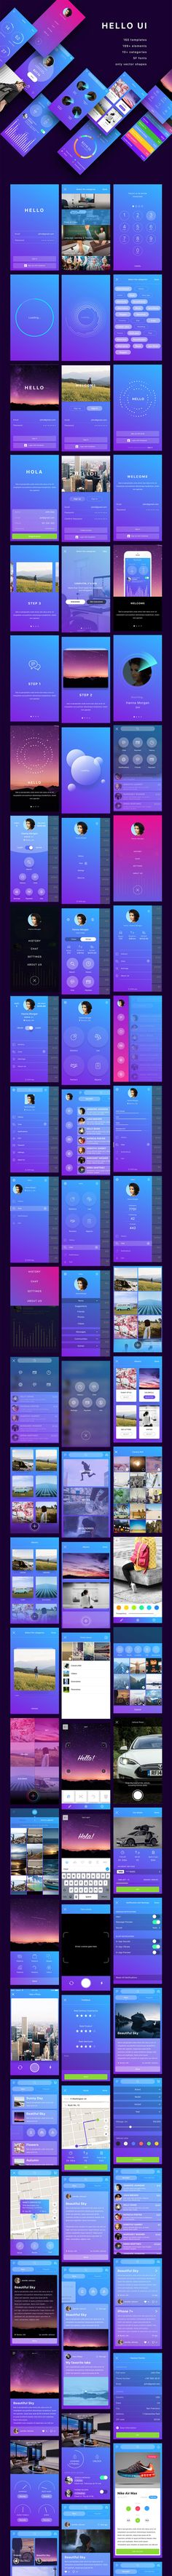 Hello UI Kit for Sketch App